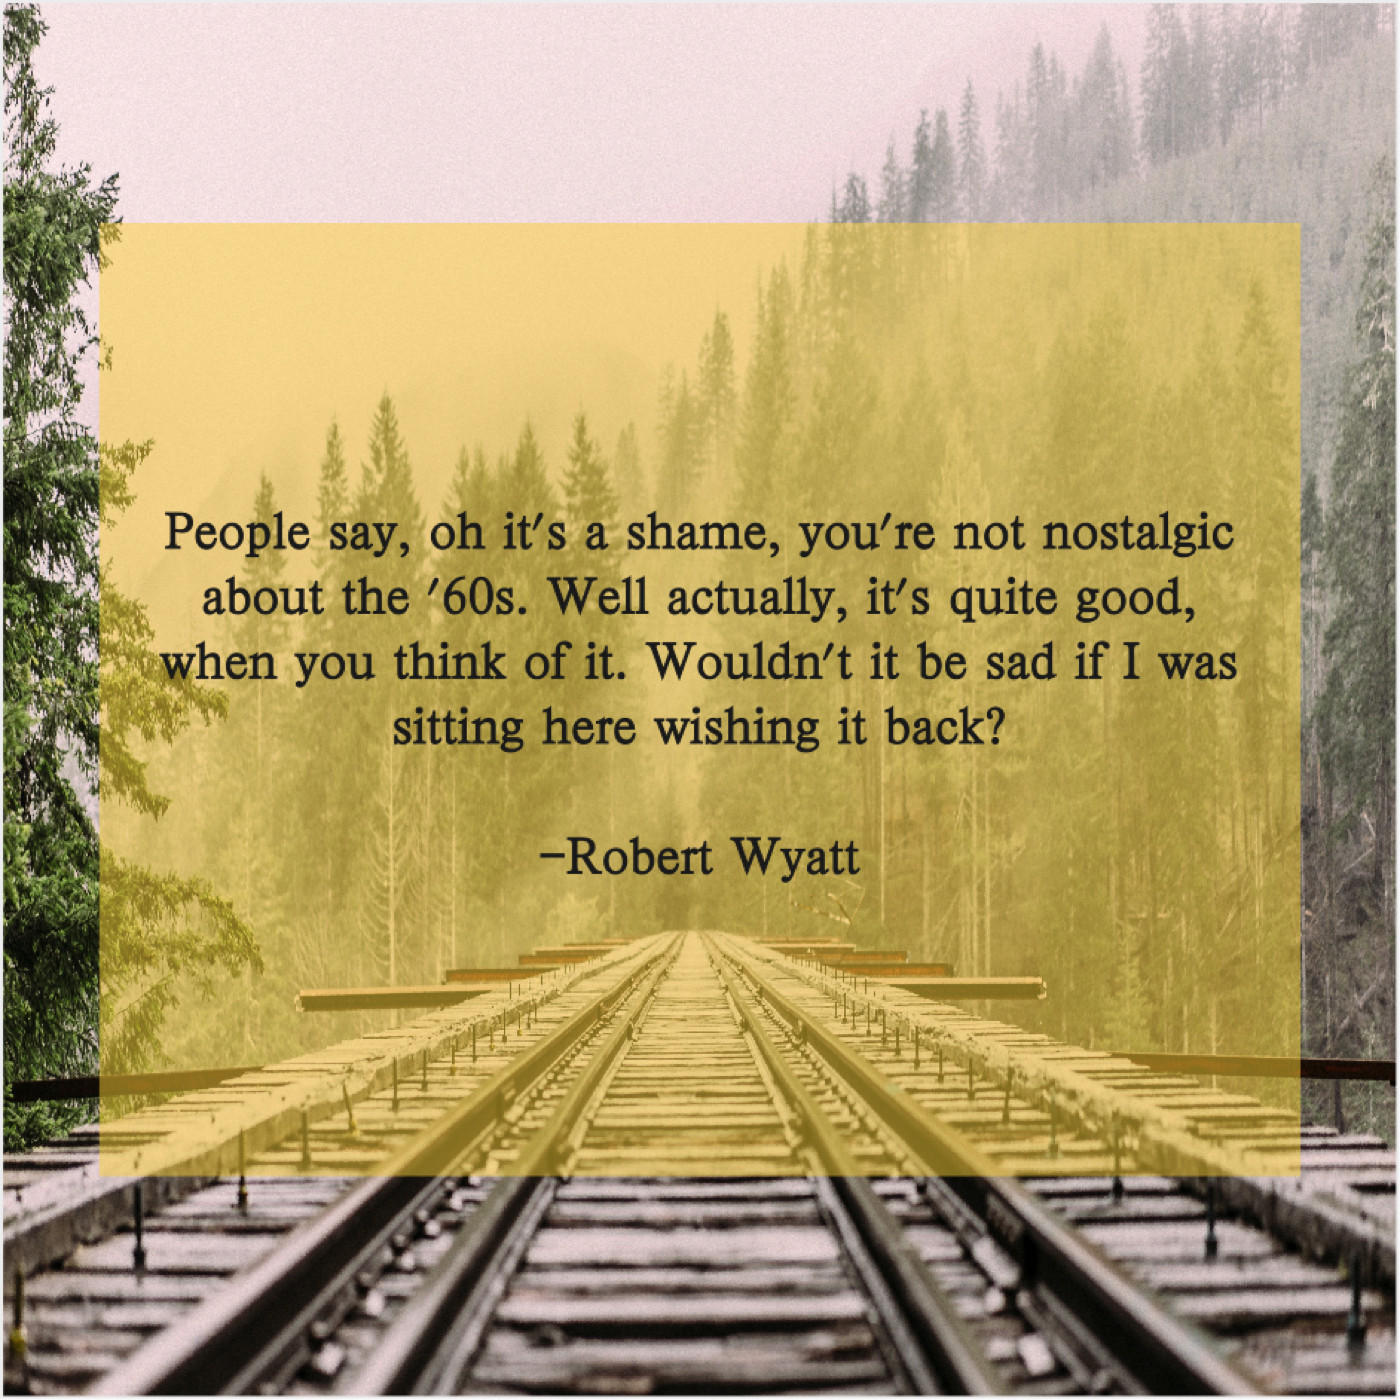 Robert Wyatt – Quotes Republic